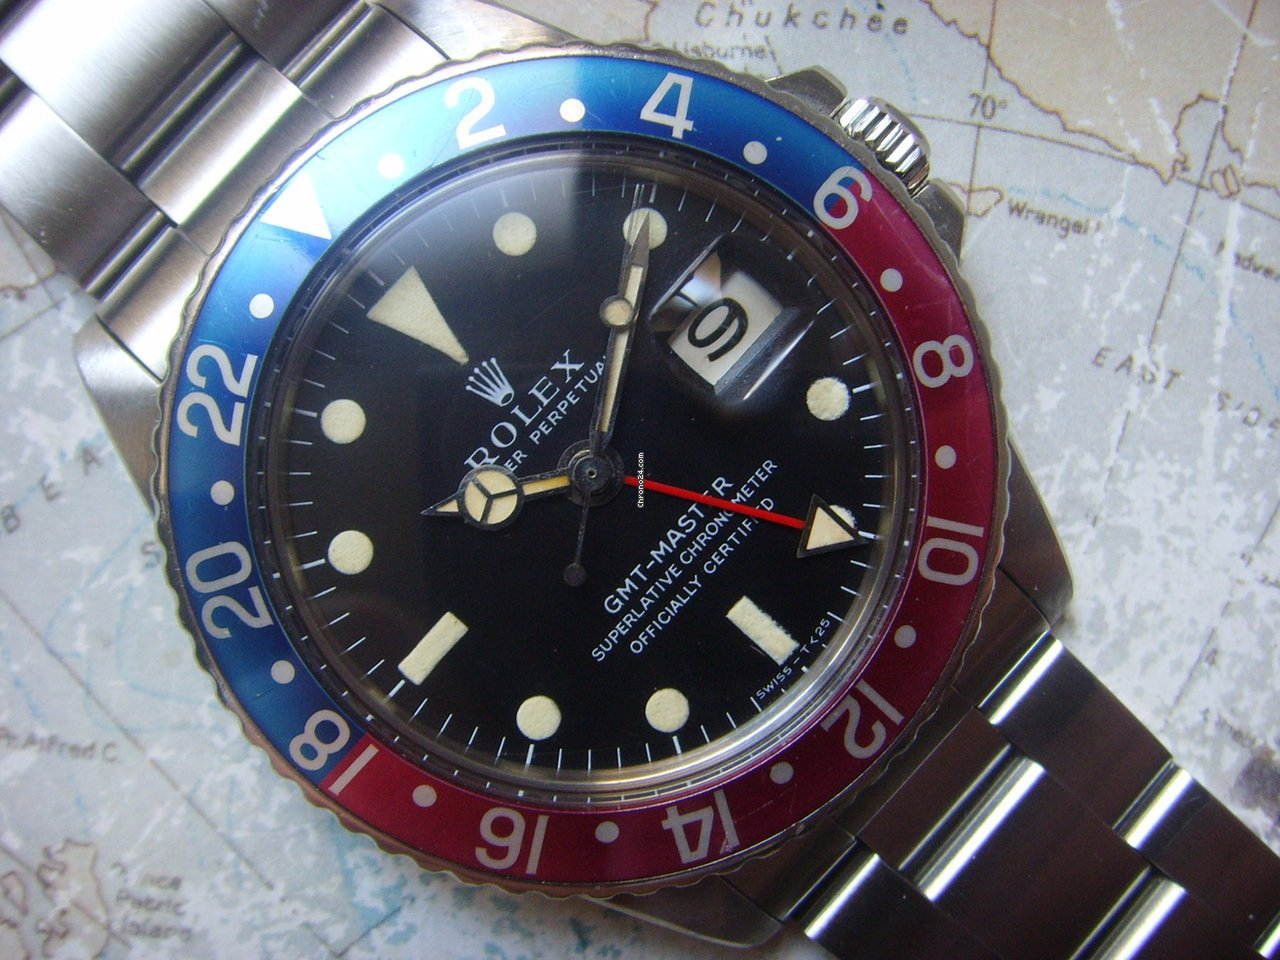 Rolex 1968 Stunning MKI Long E Rolex GMT 1675 Fuchsia Bezel for $20,093 for  sale from a Trusted Seller on Chrono24